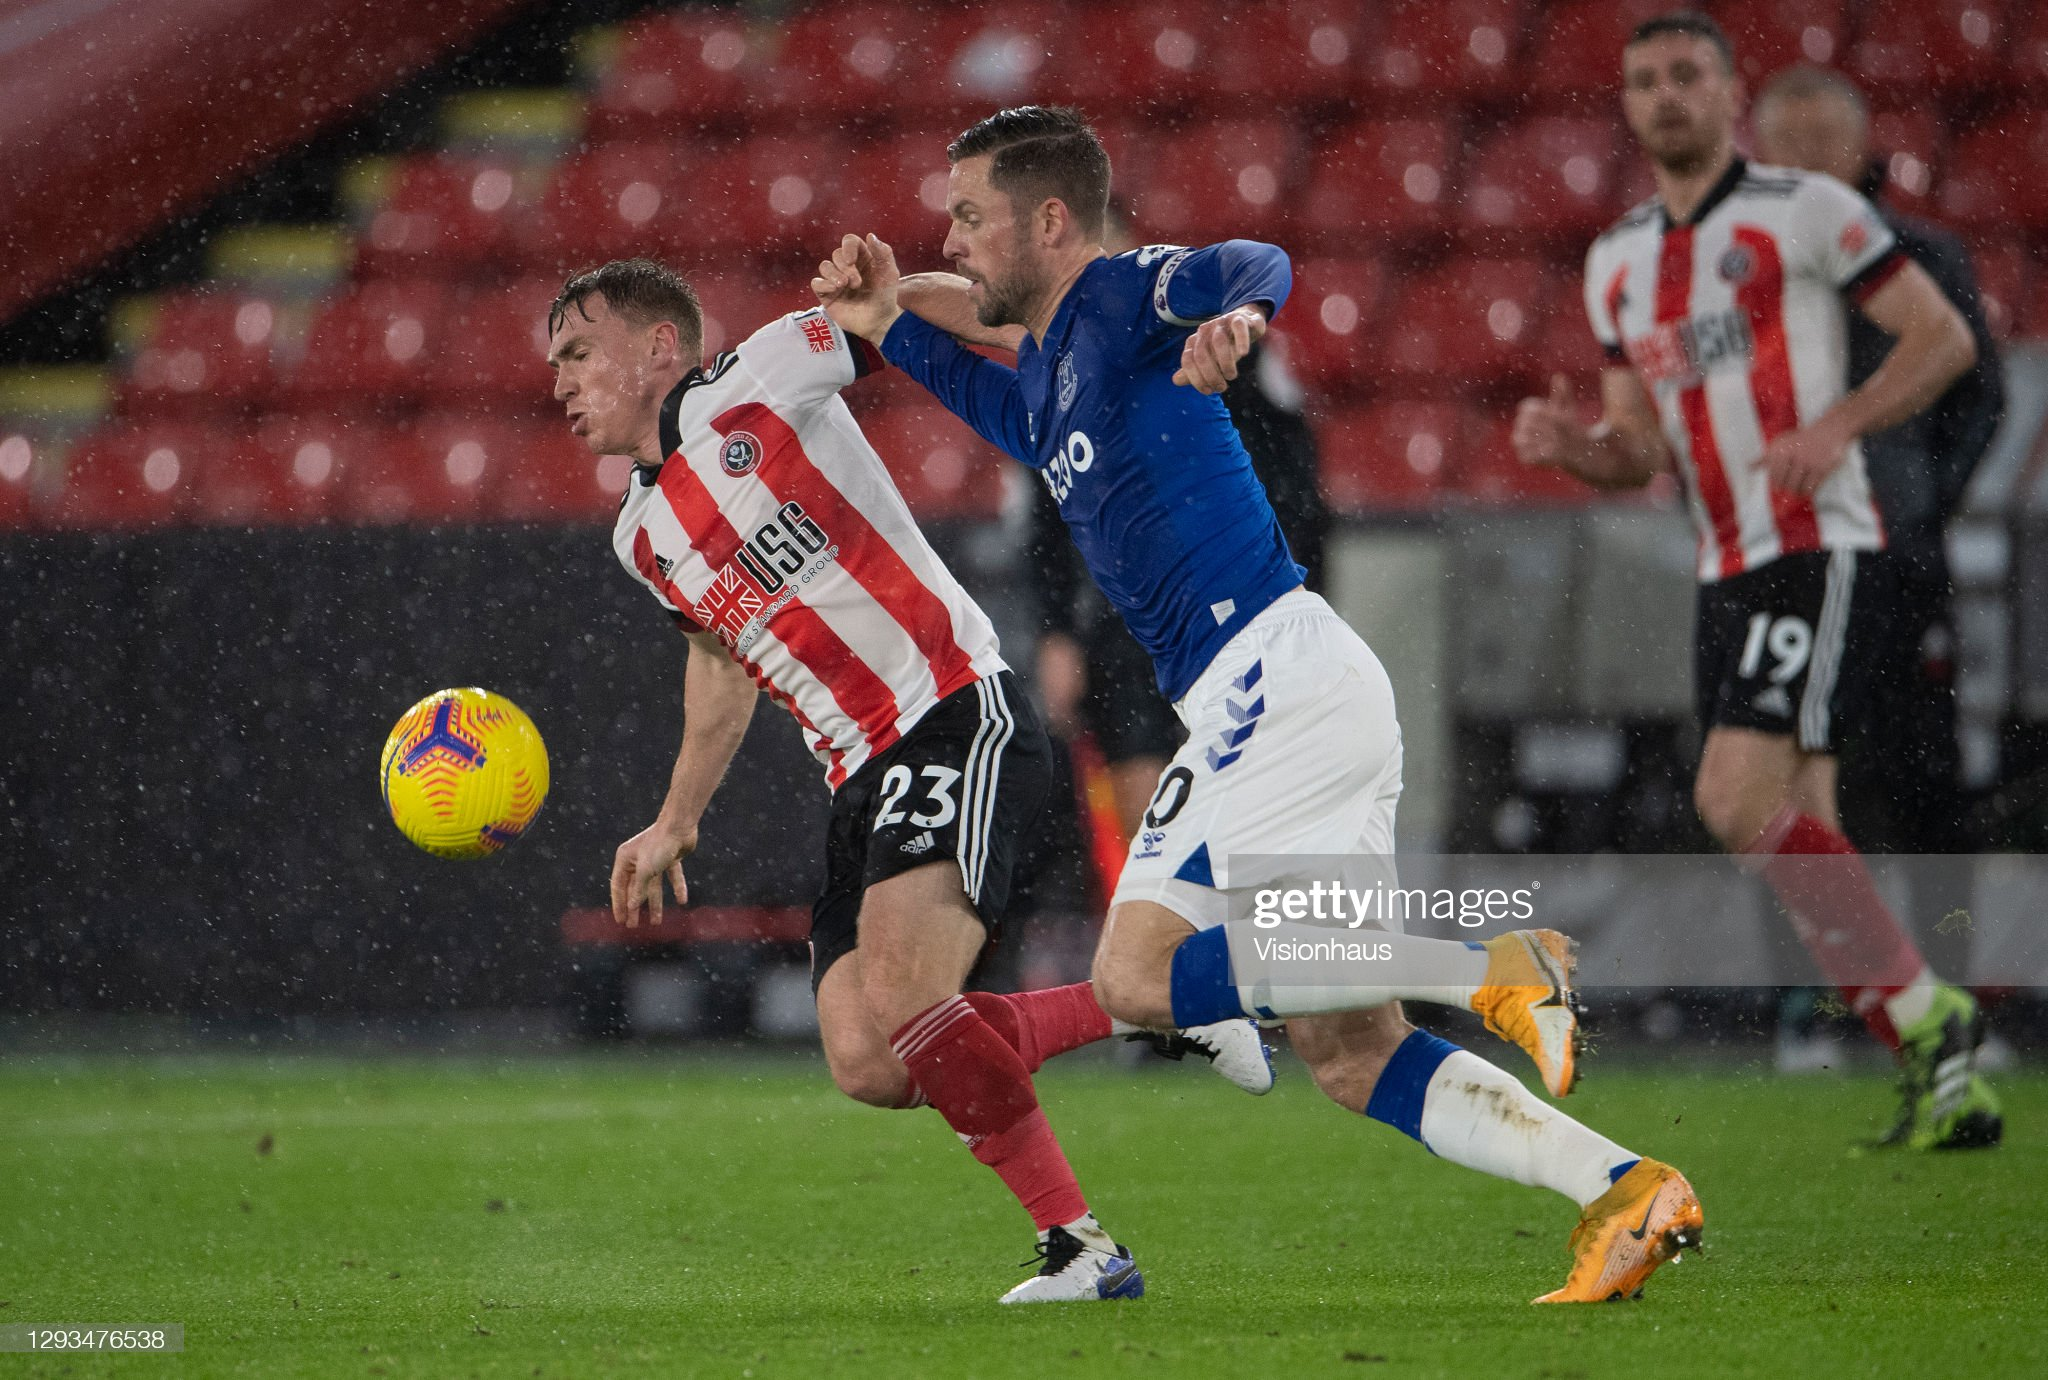 Everton vs Sheffield United Preview, prediction and odds